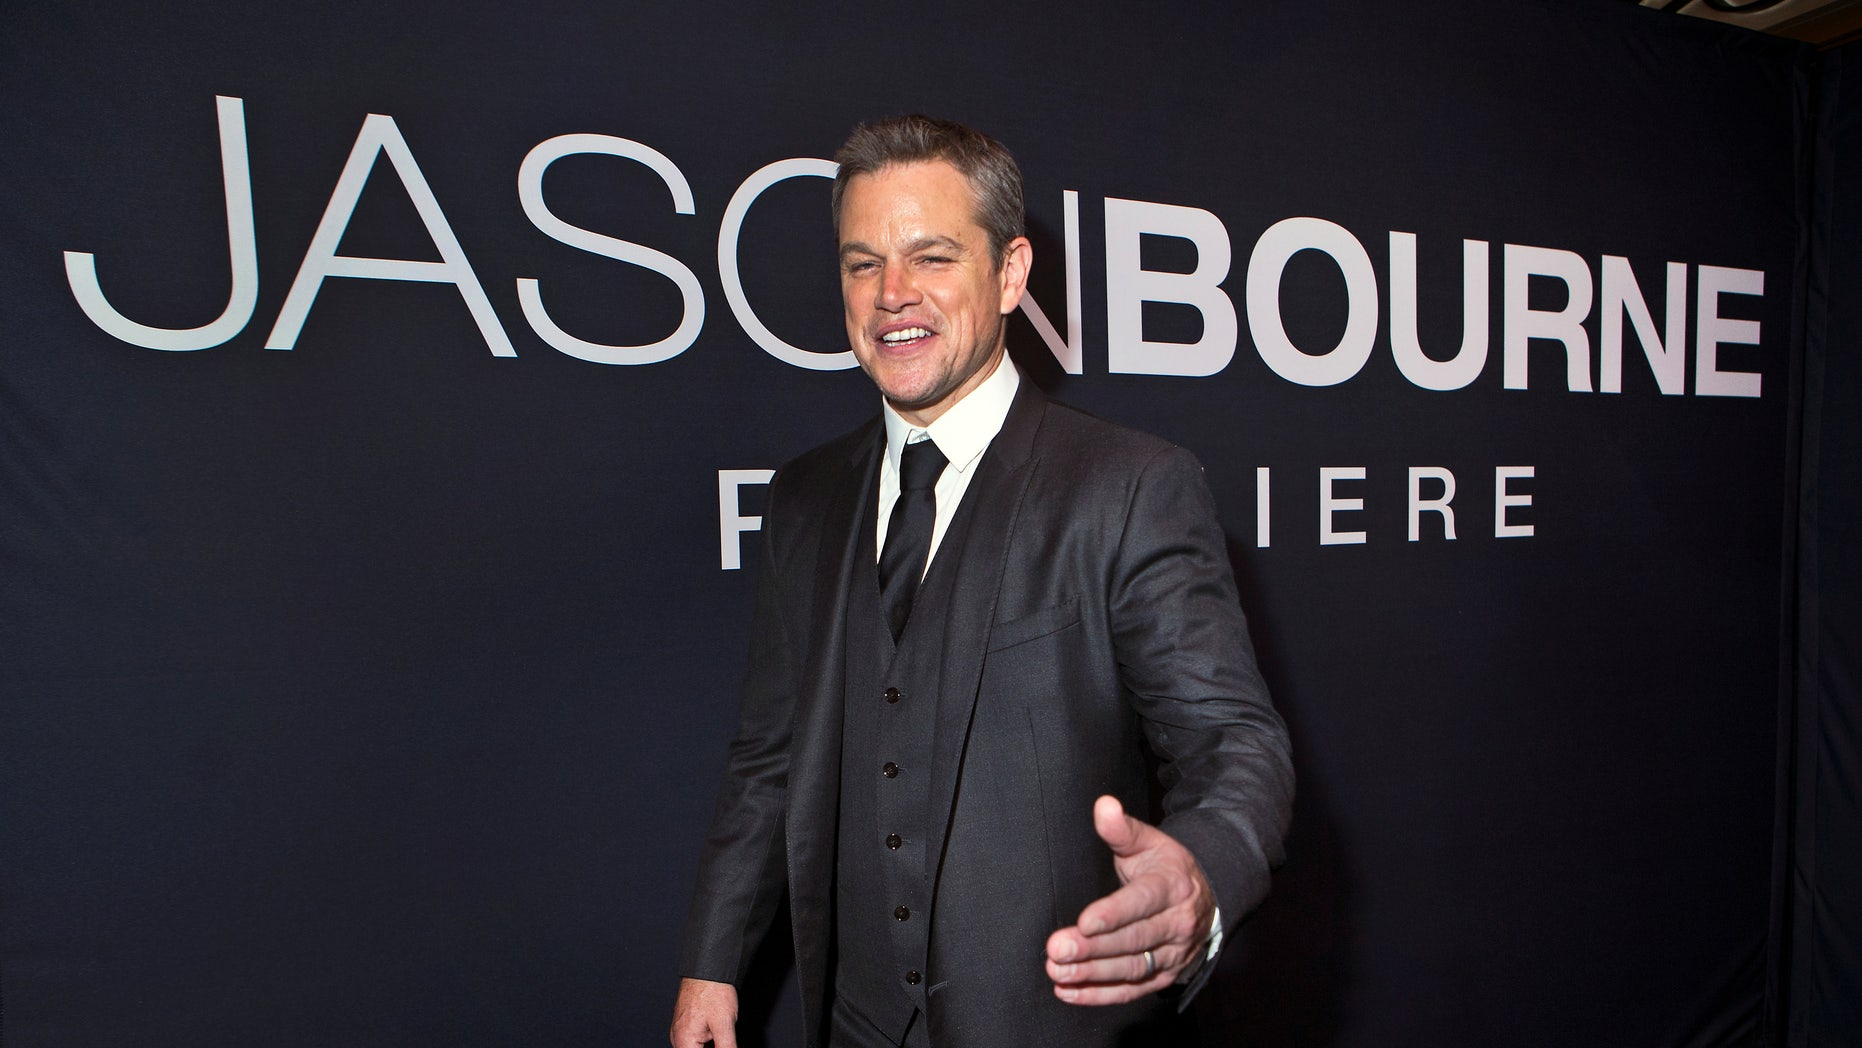 """Actor Matt Damon arrives for the Universal Pictures movie premiere of """"Jason Bourne"""" at Caesars Palace hotel-casino in Las Vegas, Nevada, U.S., July 18, 2016. Picture taken July 18, 2016. REUTERS/L.E. Baskow - RTSIN3J"""